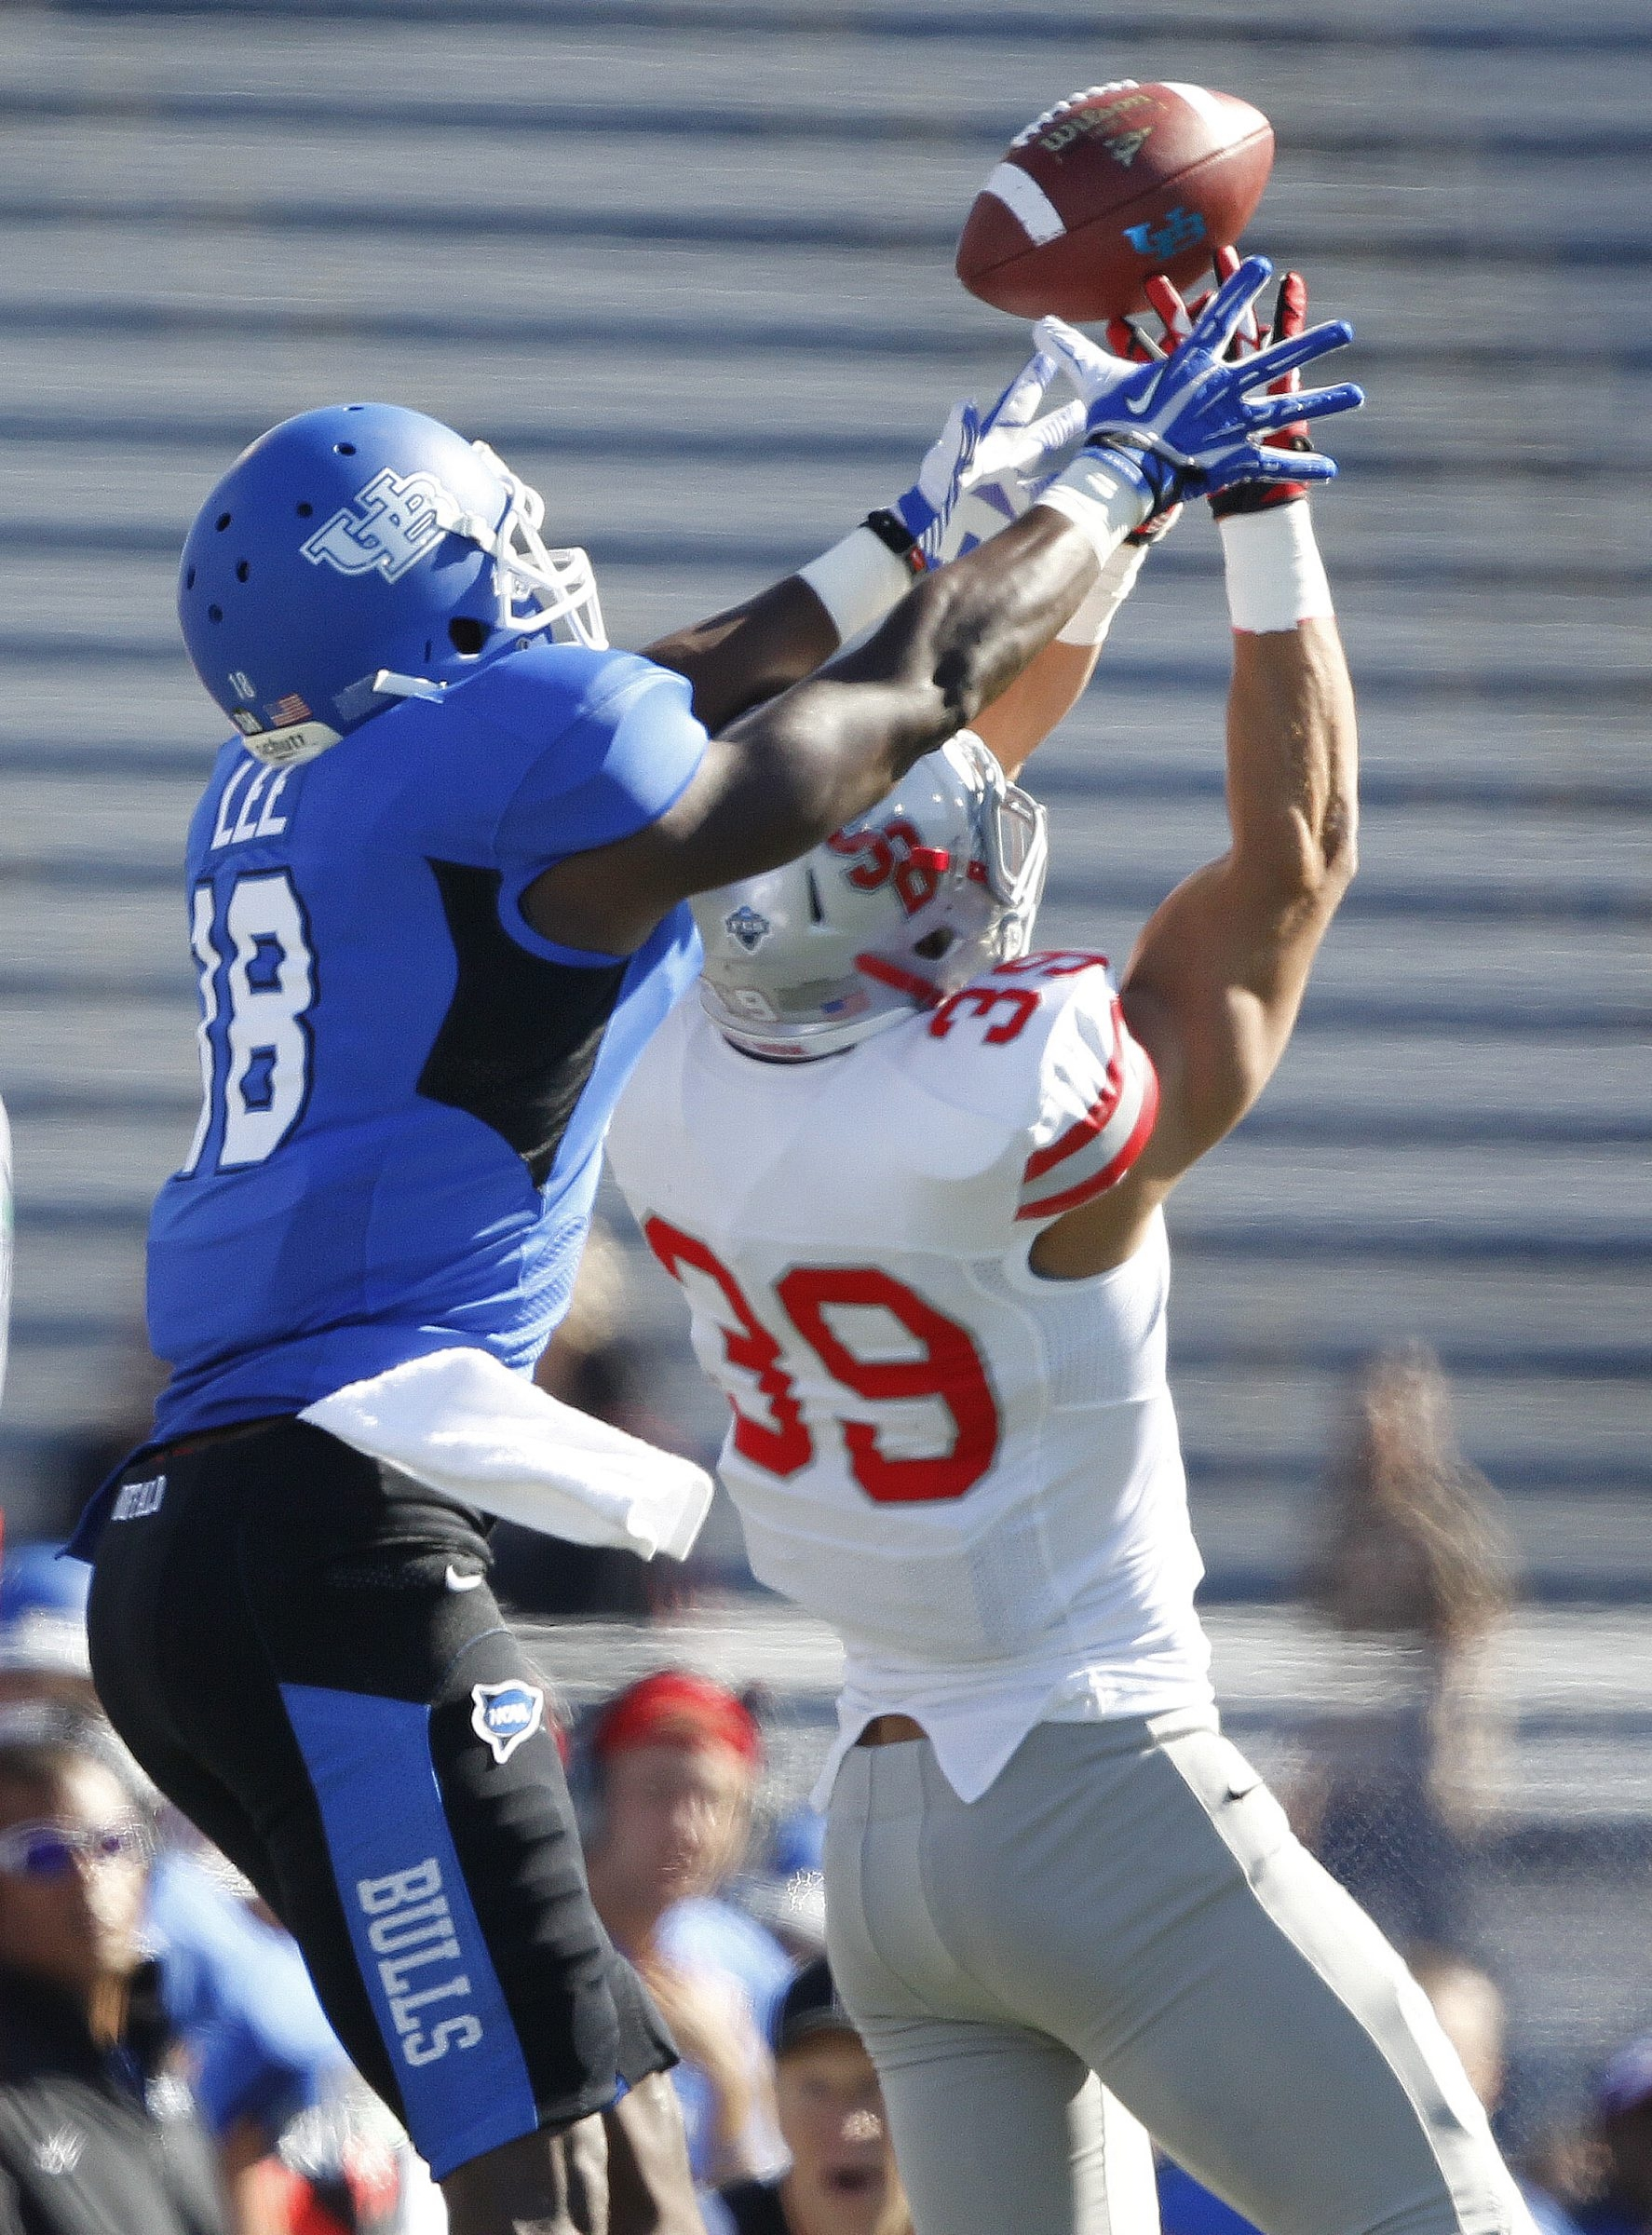 UB player,Fred Lee, battles Stony Brook player, Christian Ricard for a ball in action against Stony Brook ,on Saturday, Sept. 14, 2013. (Harry Scull Jr./Buffalo News)